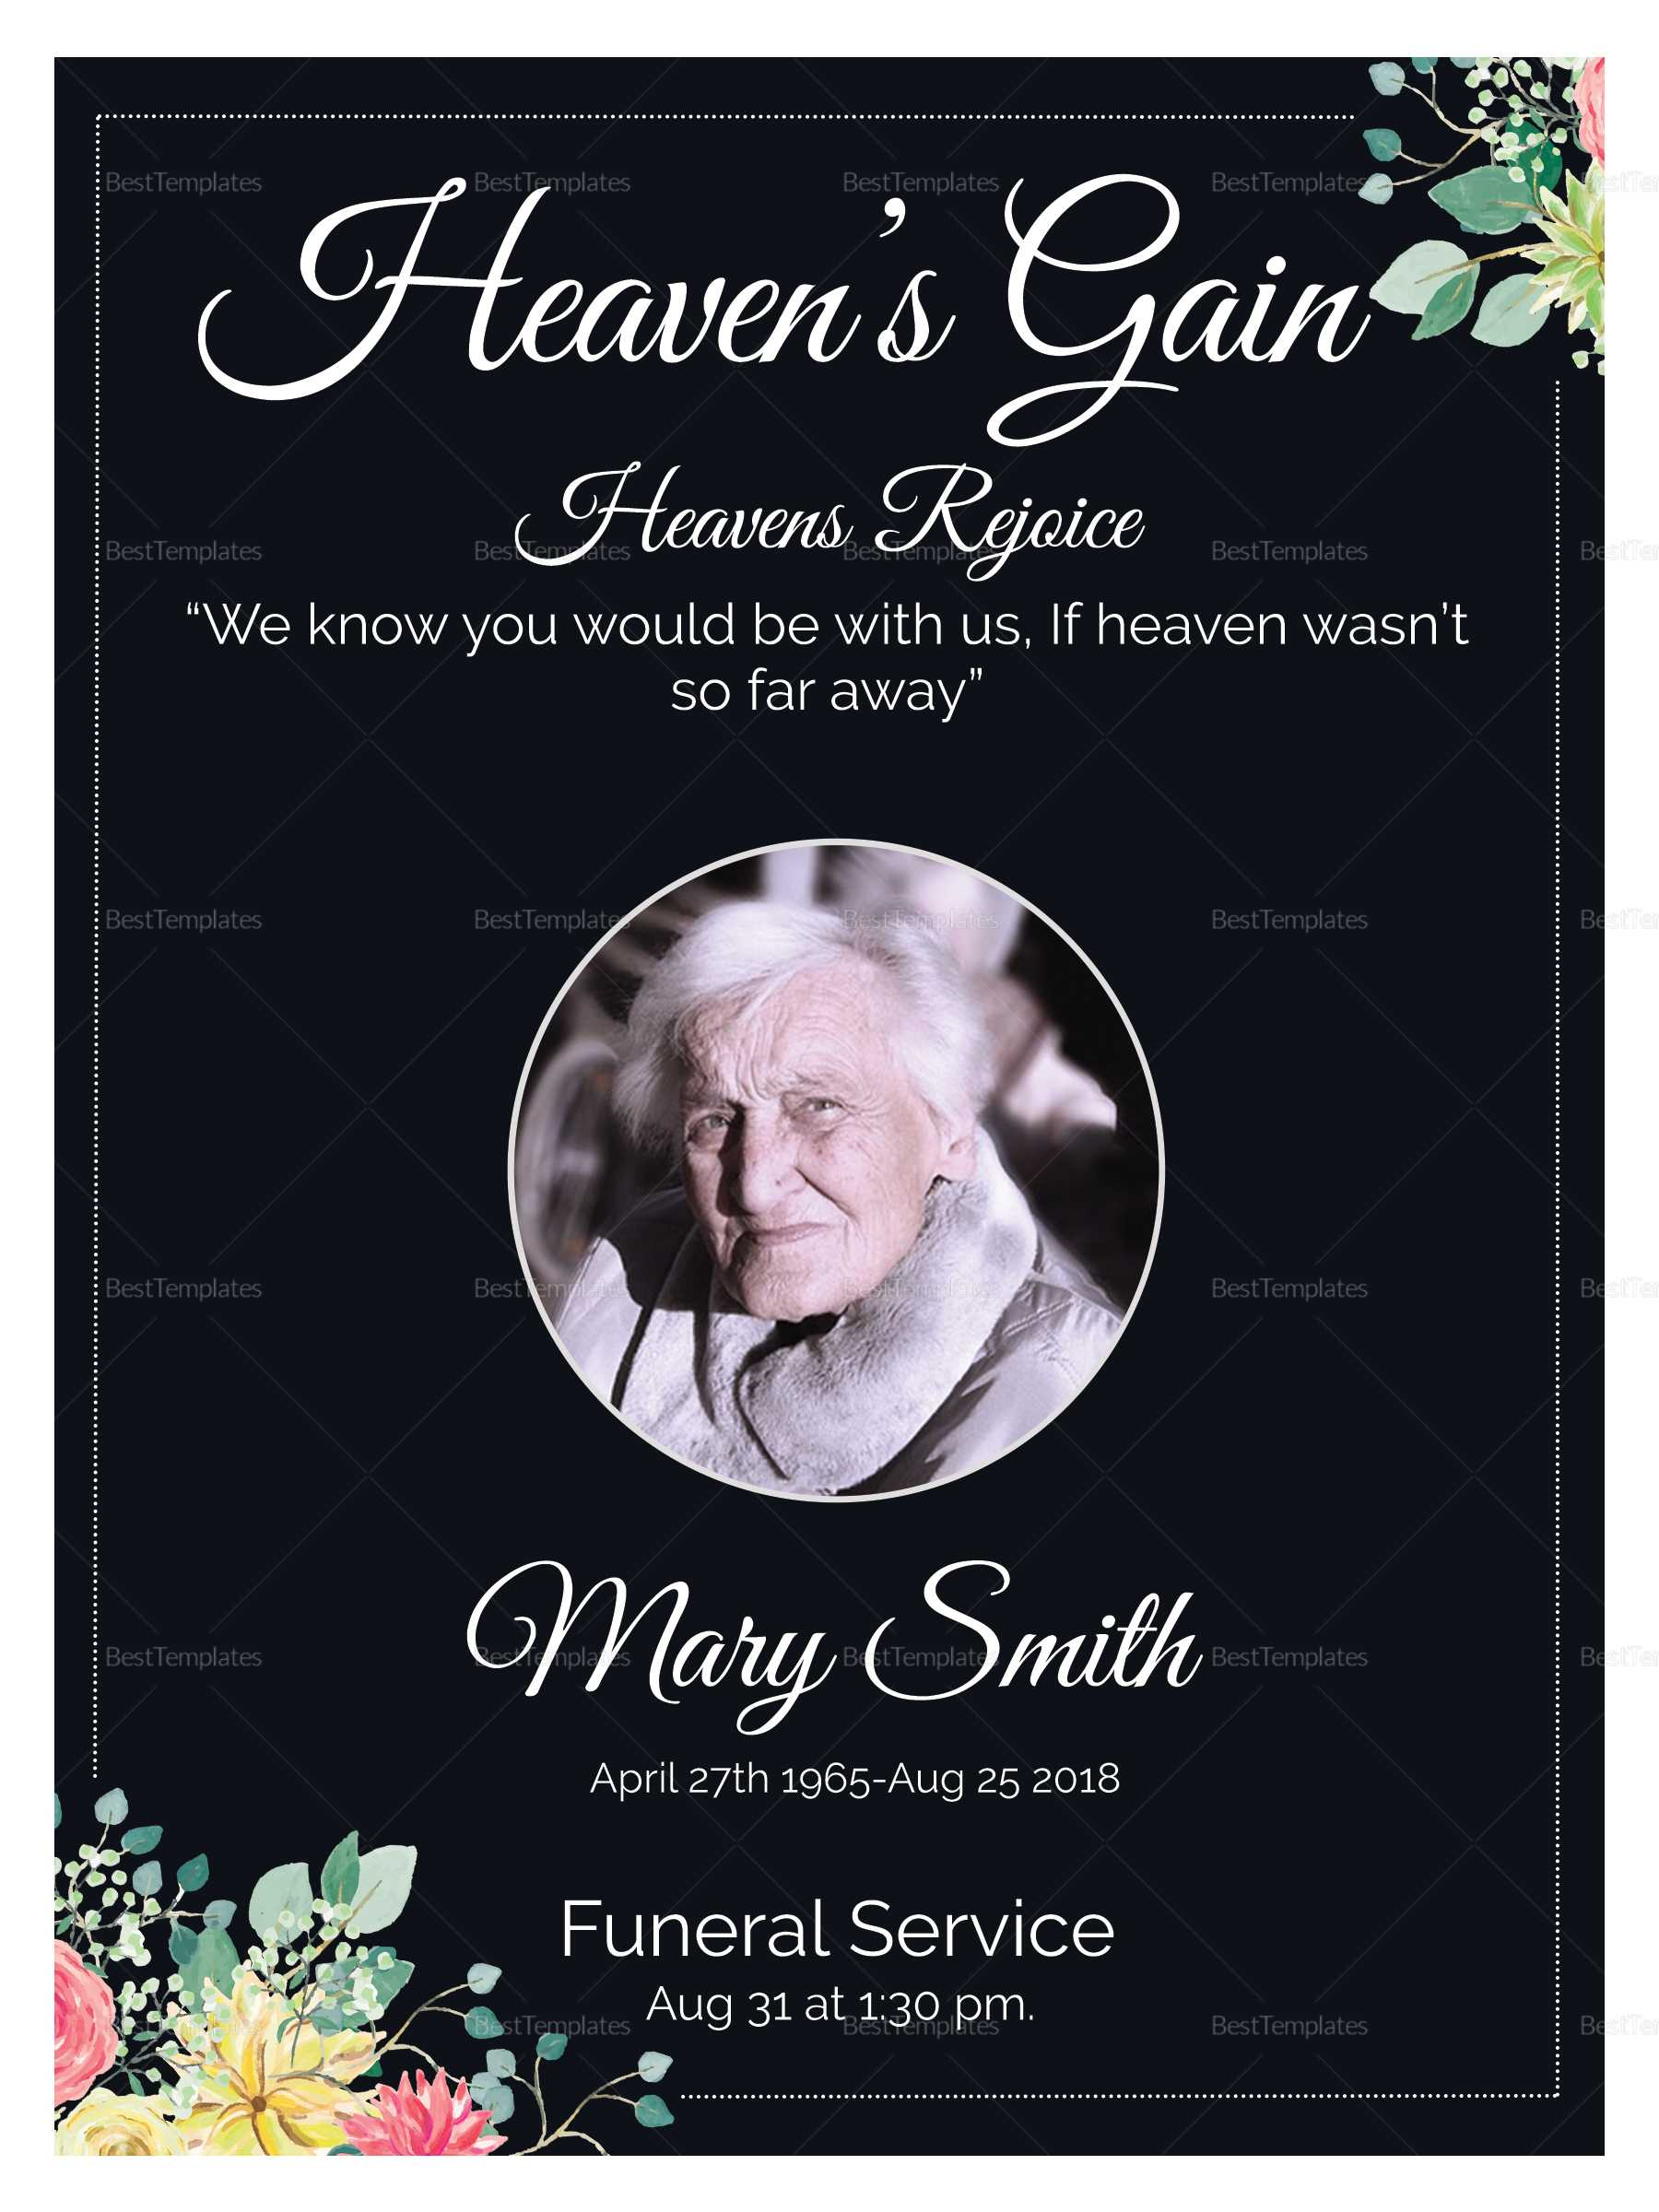 Eulogy Funeral Invitation Card Template Regarding Funeral Invitation Card Template